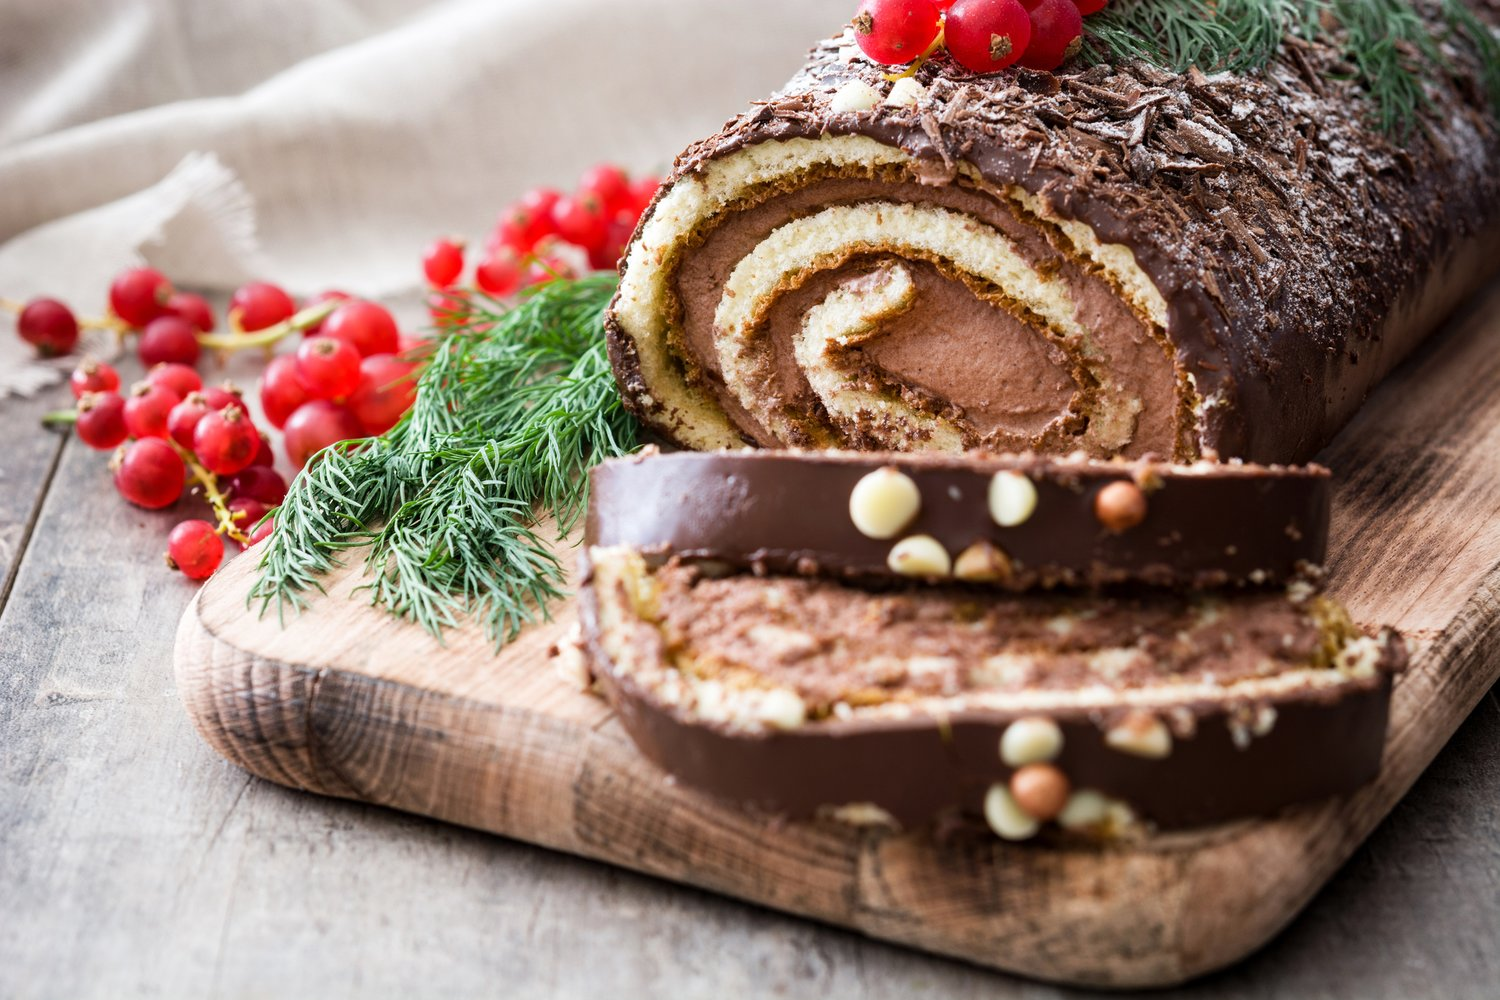 Celebrate the season with peppermint cheesecake, yule logs or other treats made by local restaurants and bakeries.